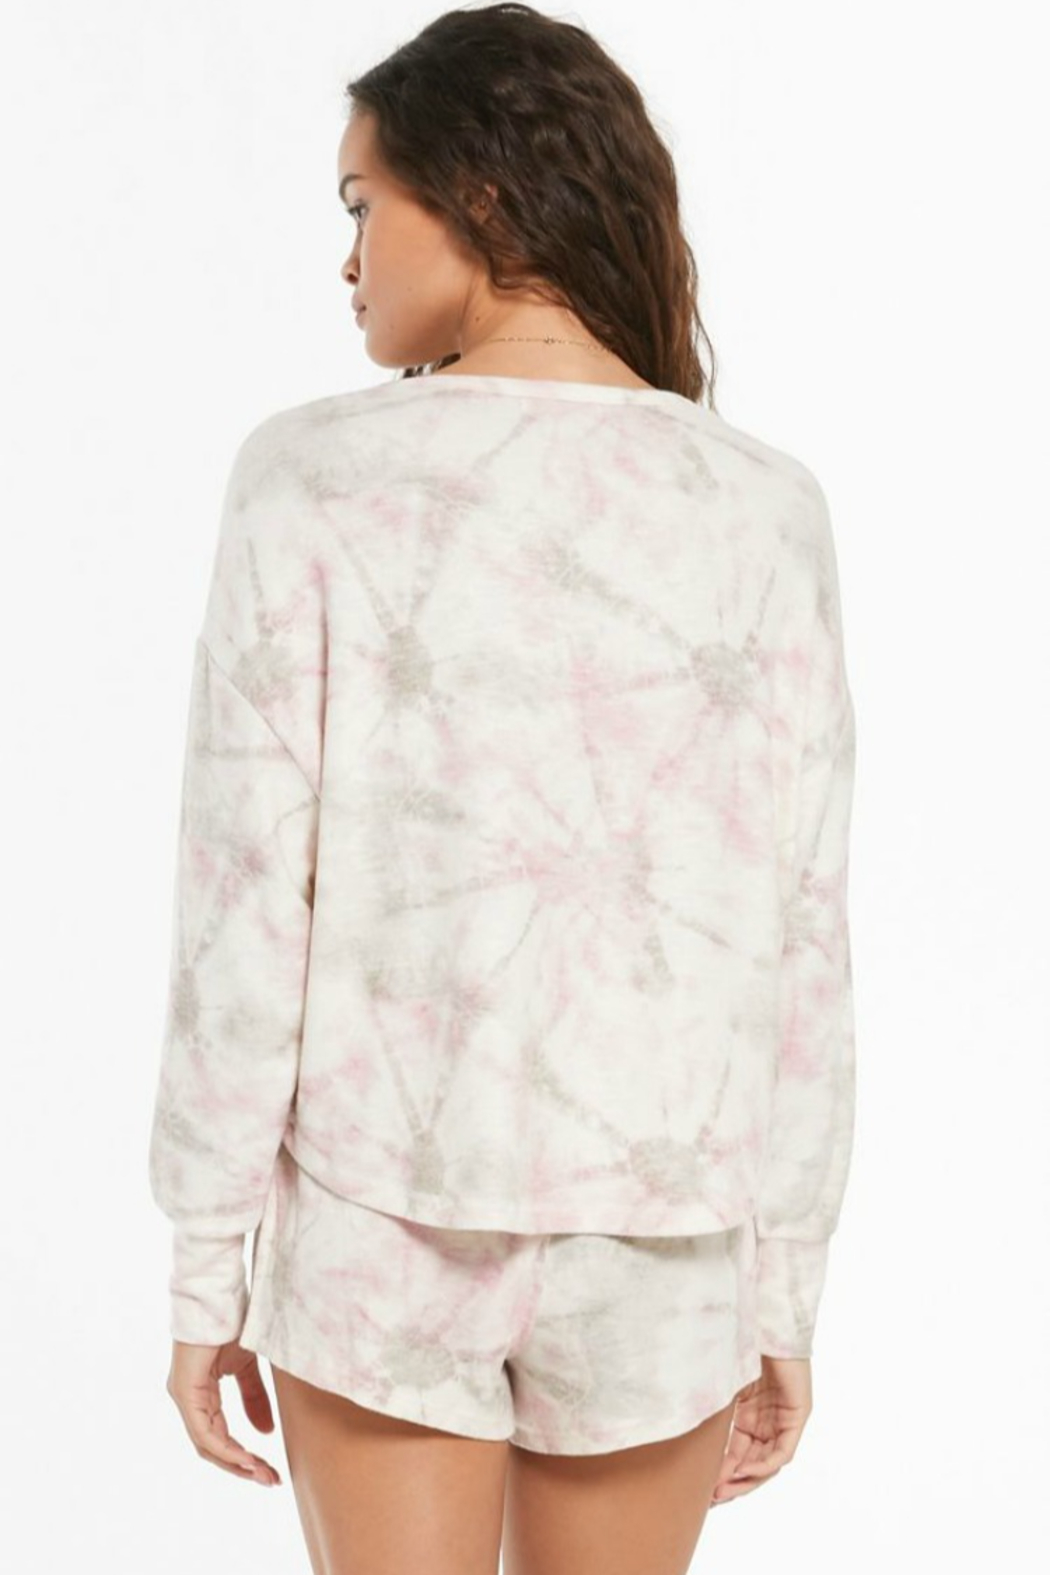 z supply Sun Ray Tie Dye Top - Back Cropped Image